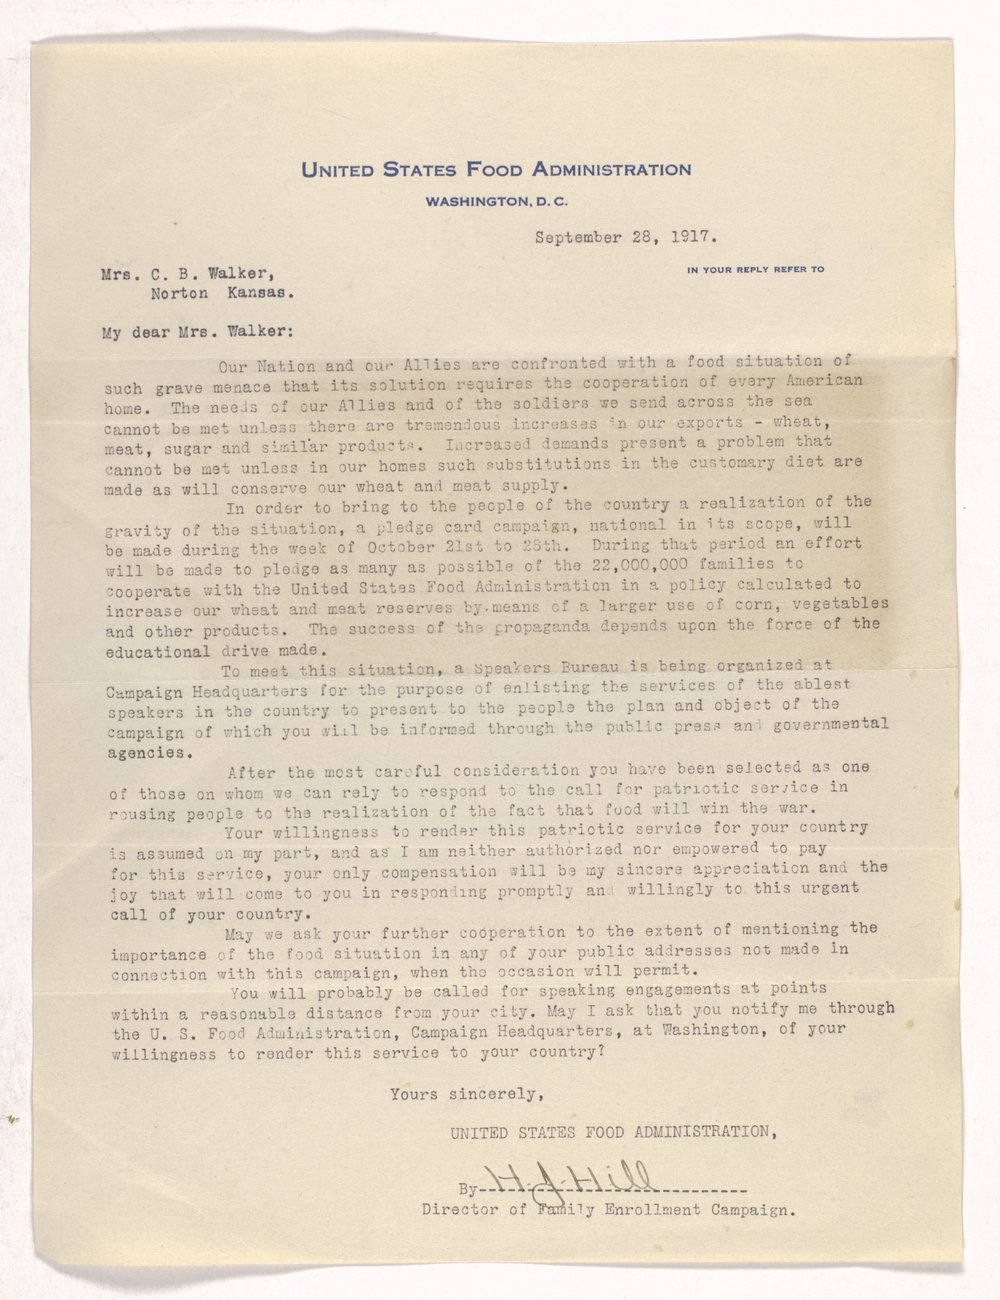 Ida M. Walker papers - 1 United States Food Administration, 1917